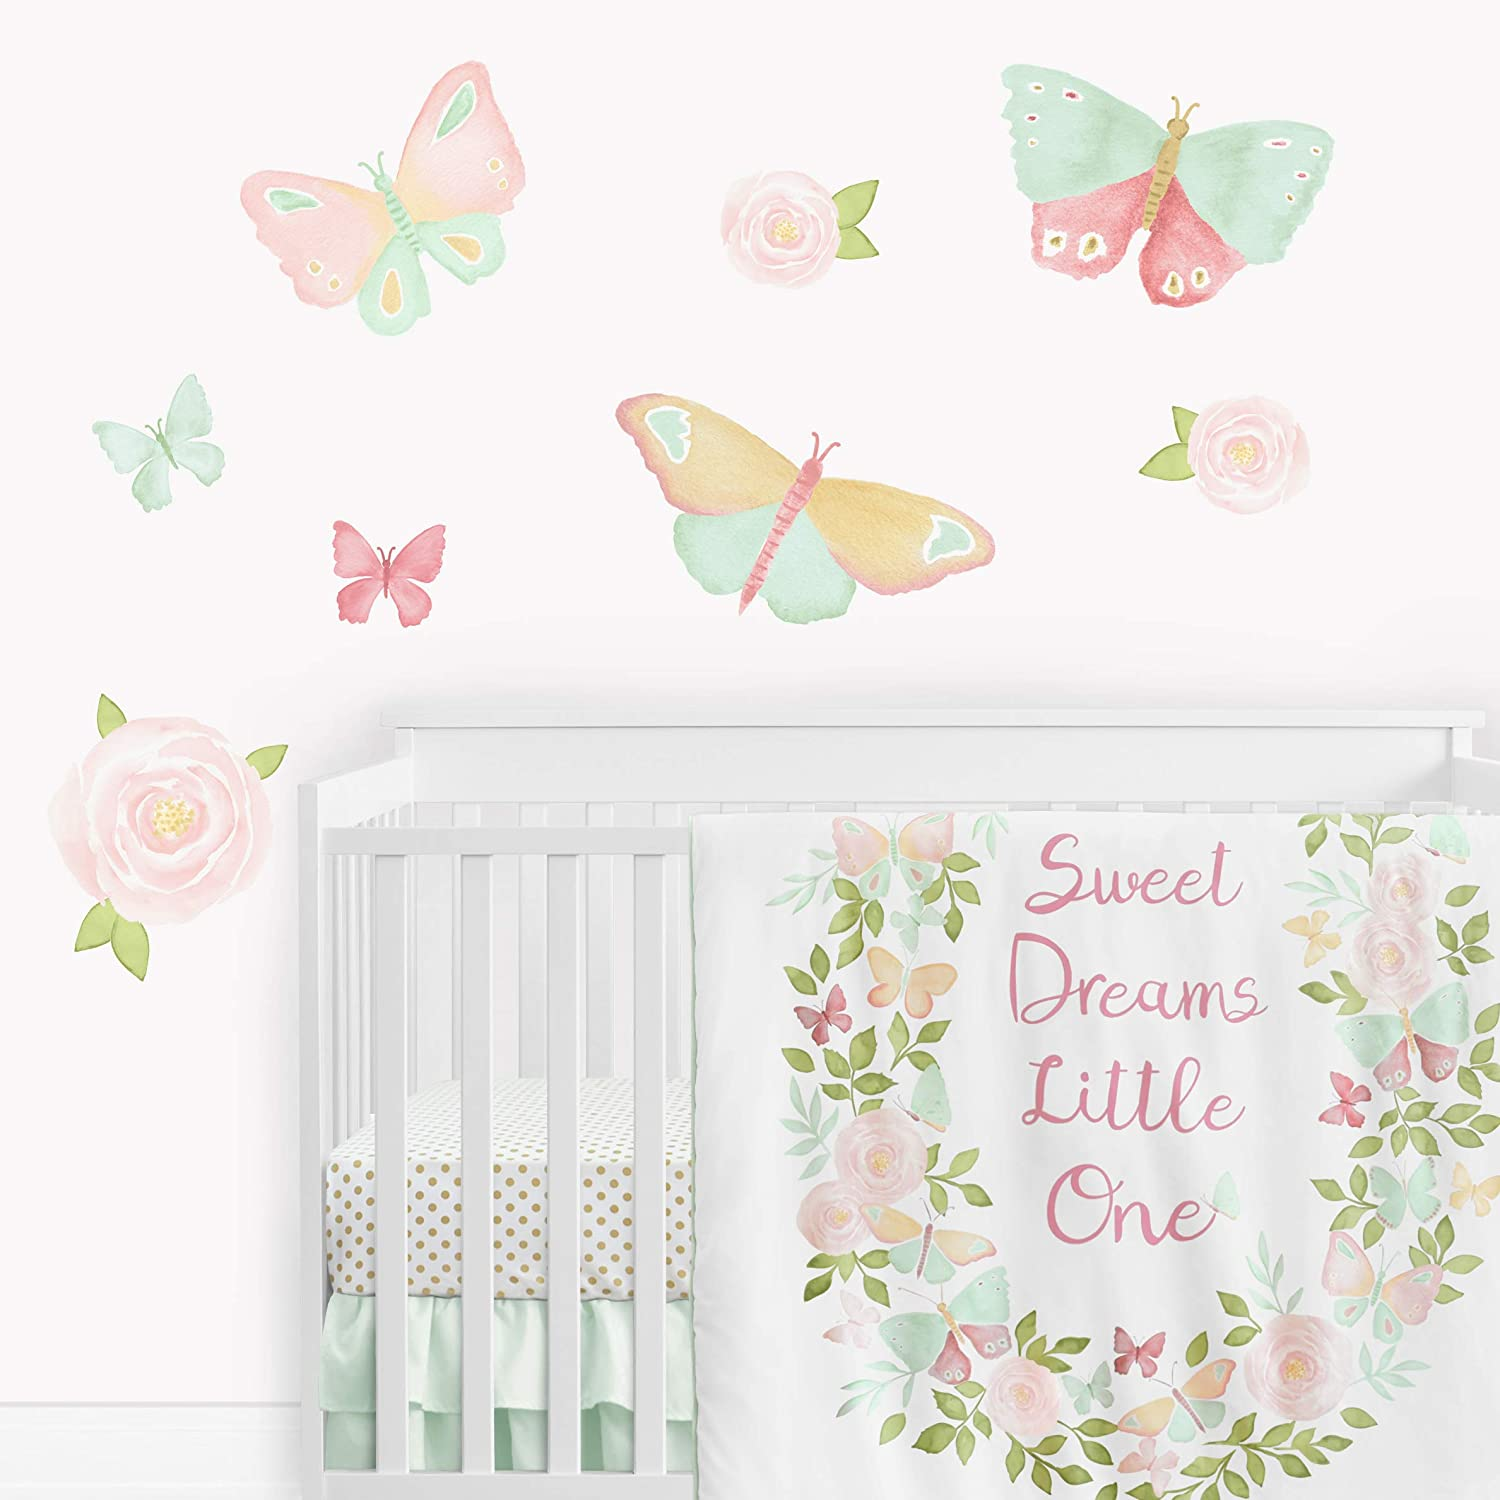 Sweet Jojo Designs Butterfly Floral Rose Large Peel and Stick Wall Decal Stickers Art Nursery Decor Mural - Set of 4 Sheets - Blush Pink, Mint and White Shabby Chic Watercolor Boho Butterflies Garden